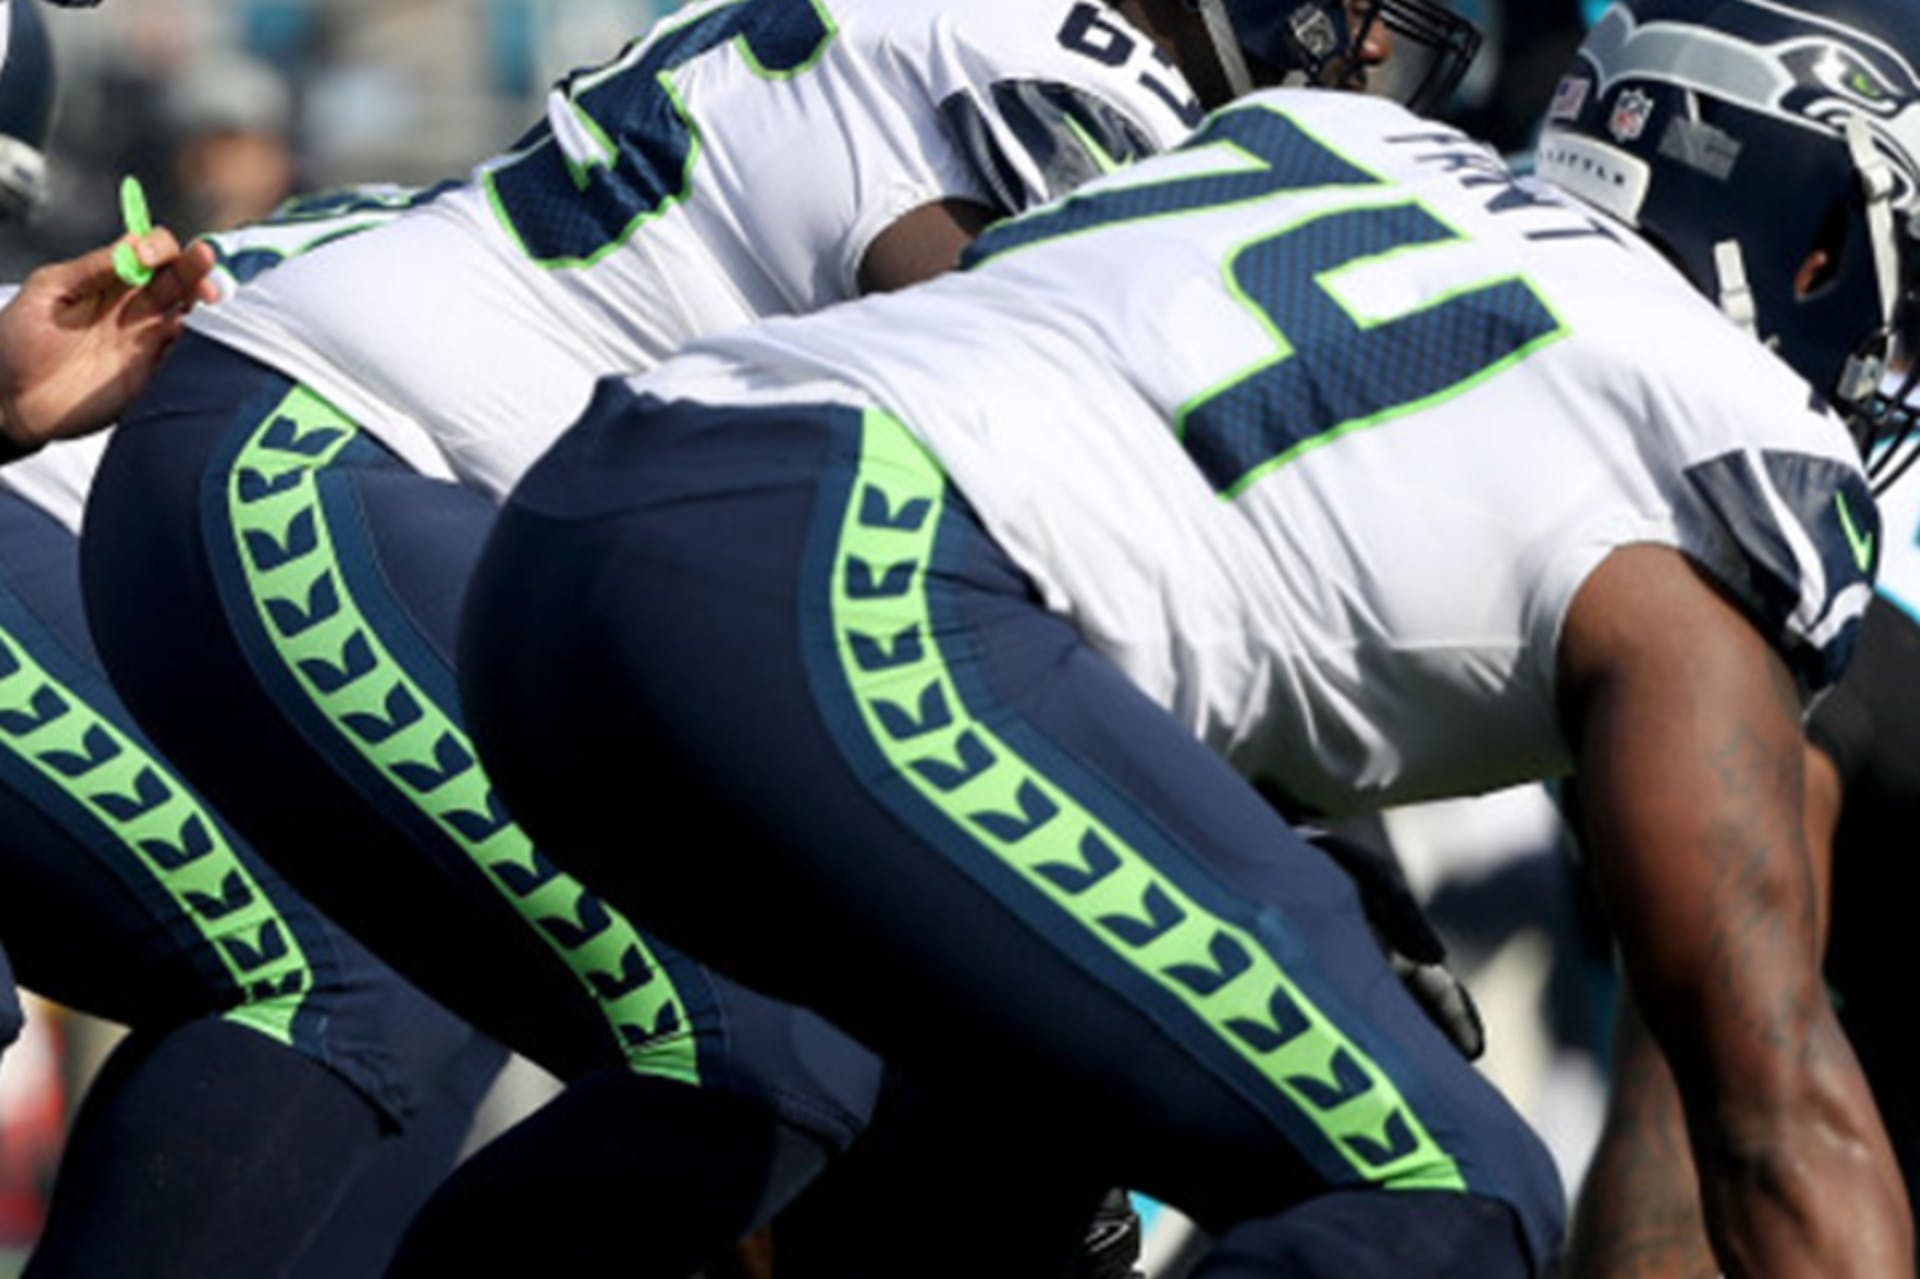 Backview of football players crouching